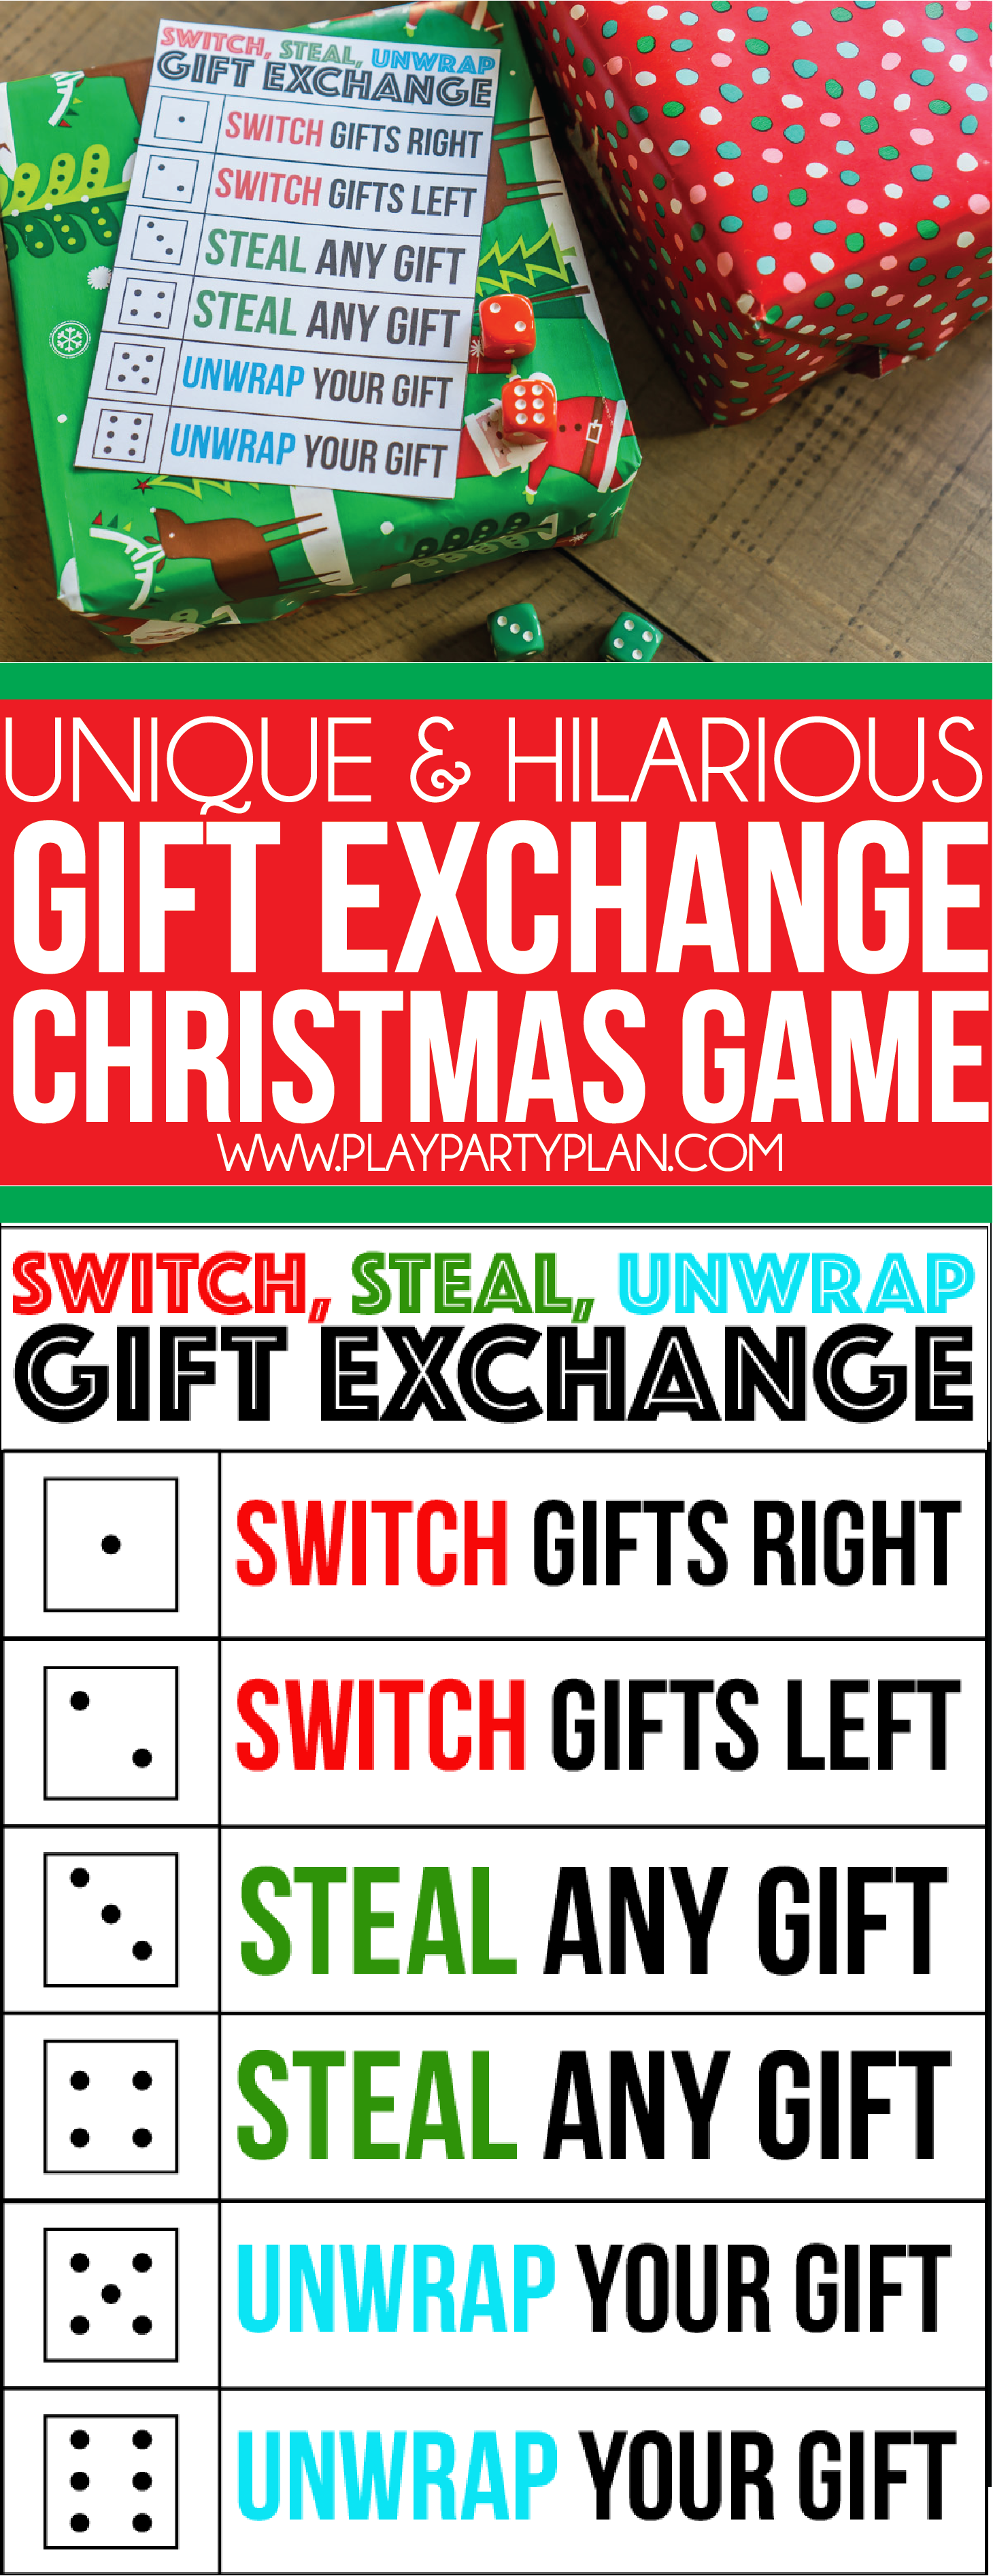 7 Office Christmas Party Games | GamesAndCelebrations.com